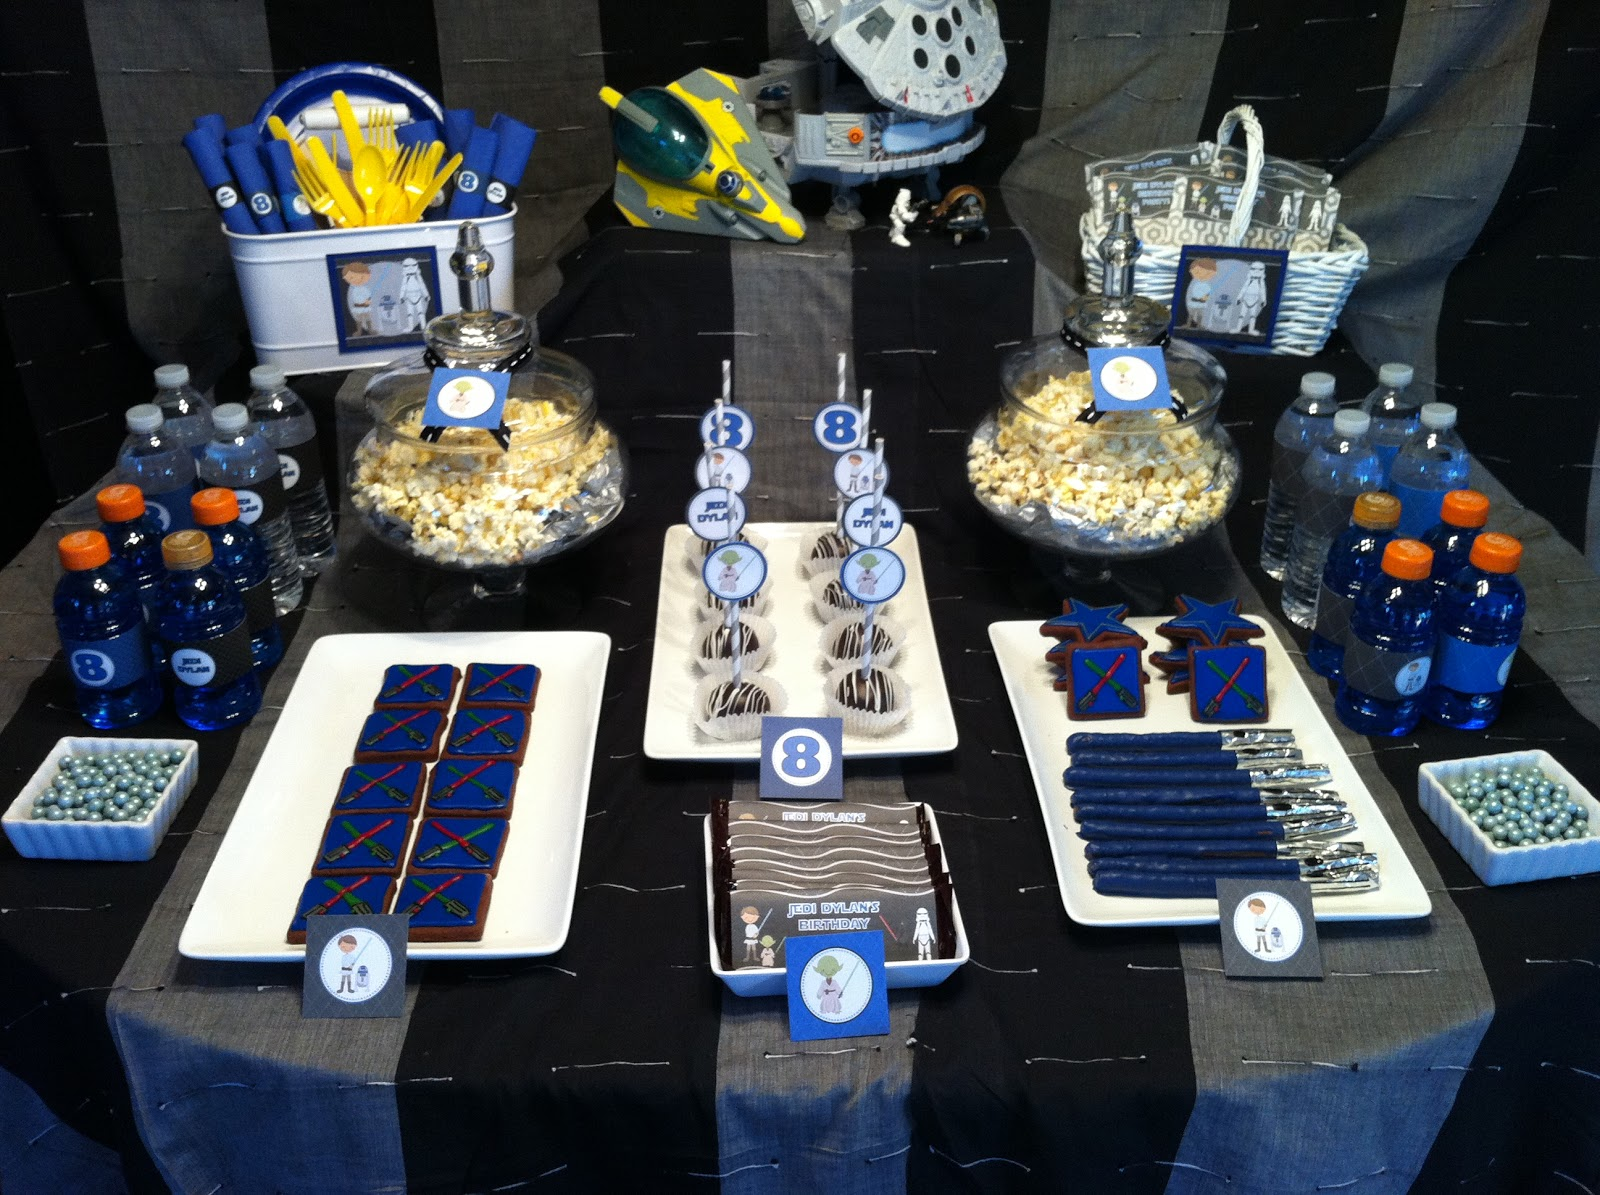 Sweet shindigs star wars inspired dessert table - Decoration table theme star wars ...